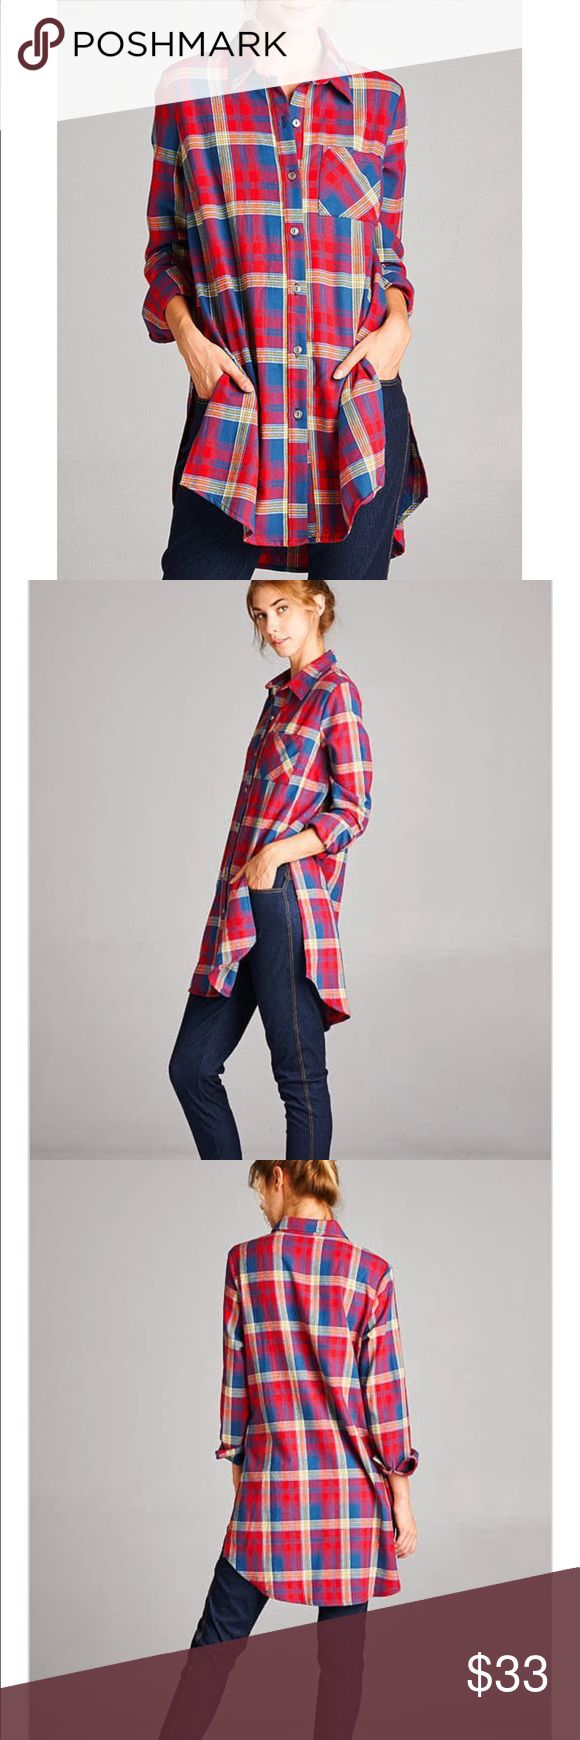 Isla Plaid Wear this casual fun plaid tunic with your favorite skinny jeans or leggings for a day around town. Loose fit, long sleeve, button down, hi-low tunic shirt. Rounded hems. Has side slits. Has single chest pocket at front. This button down is made with heavyweight plaid flannel that is soft, drapes well and has no stretch. Fabric : 100% Cotton Made In : Guatemala nak-dfashion.com Tops Button Down Shirts